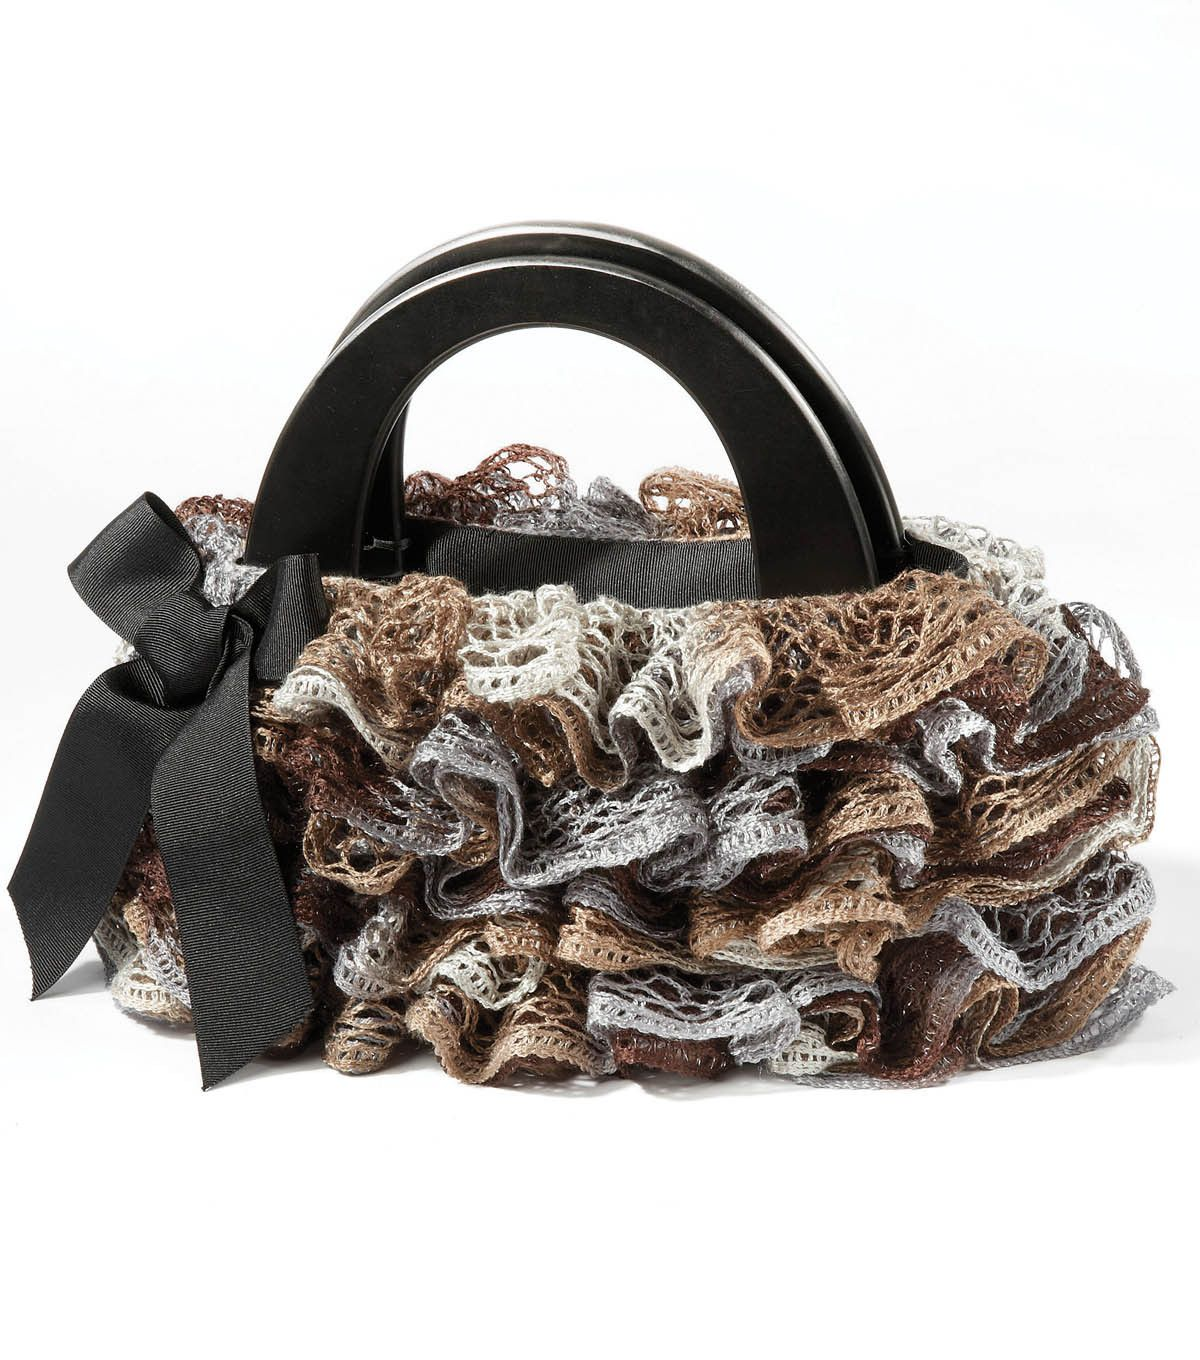 Check out this adorable ruffle purse made with Sashay yarn ...